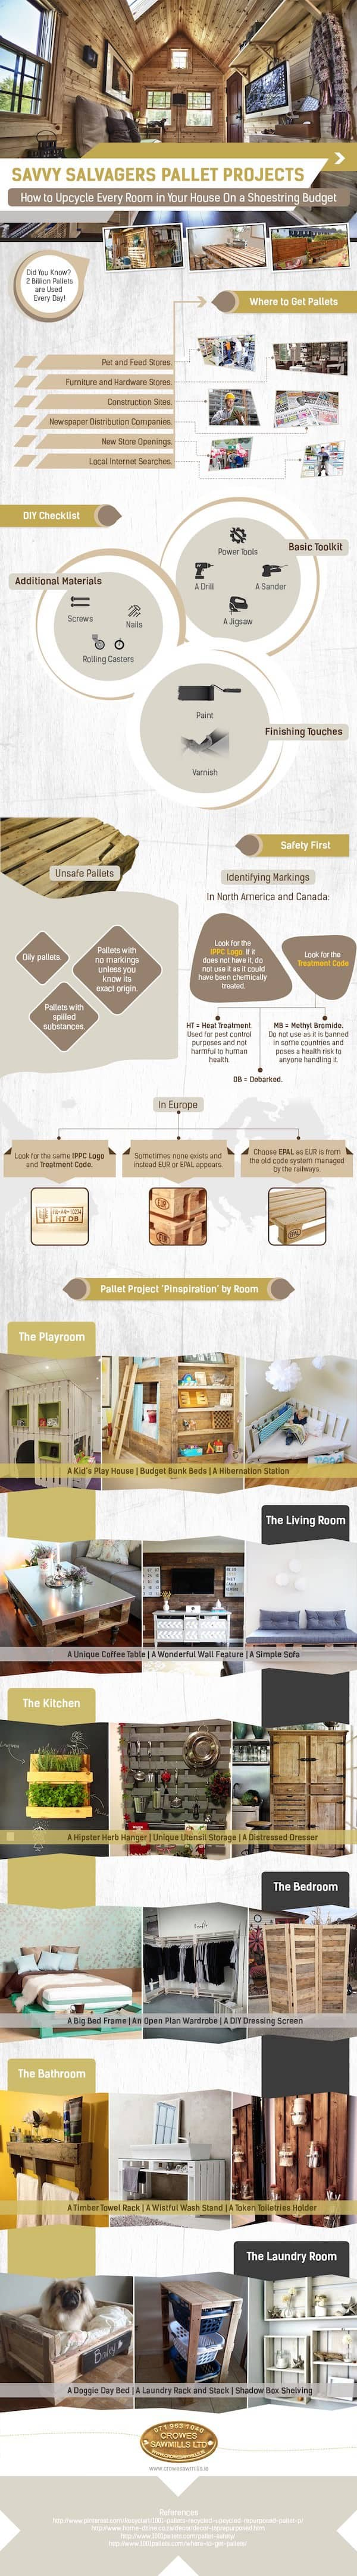 savvy-salvagers-pallet-projects-infographic